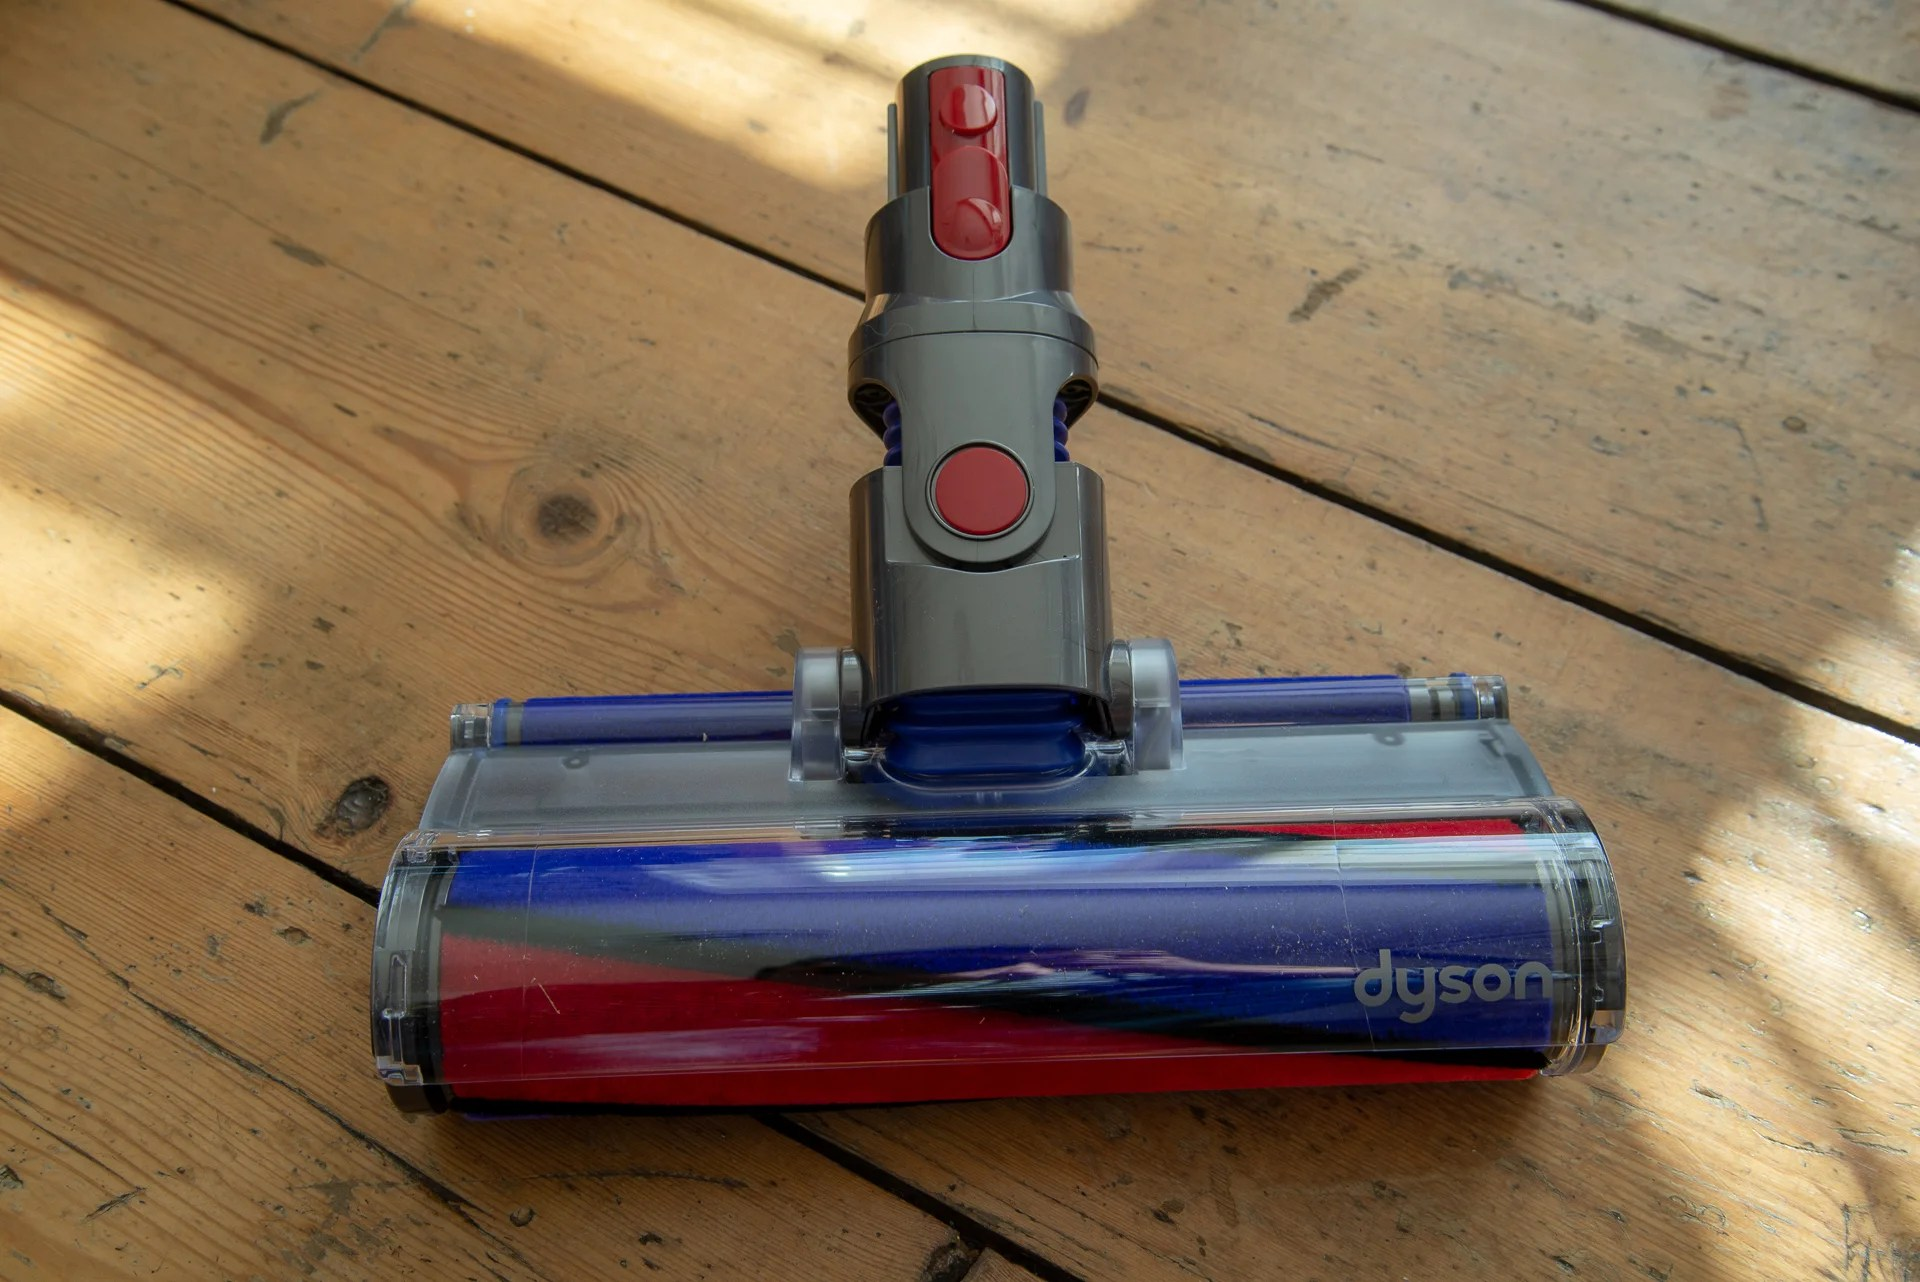 Dyson V8 Avis Dyson V11 Absolute Review Trusted Reviews